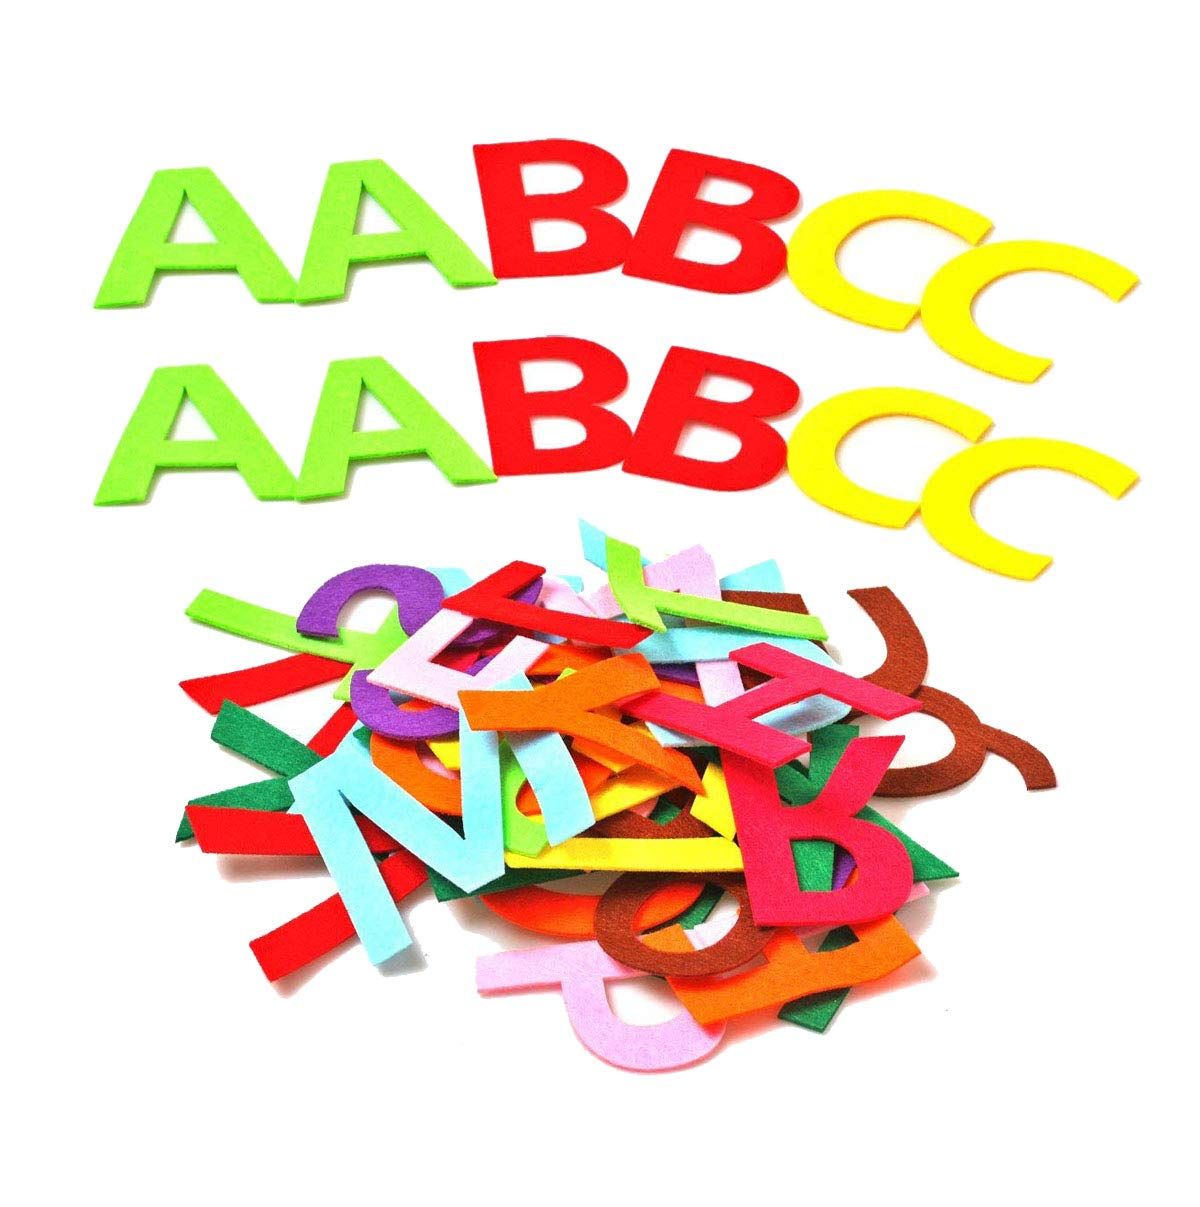 RERIVER 3.2-Inch Felt Alphabet Letters(4 Sets) 104Pcs A to Z Assorted Colors Fabric ABCs for DIY Craft Kids'Toys Christmas Birthday Party Decoration by RERIVER